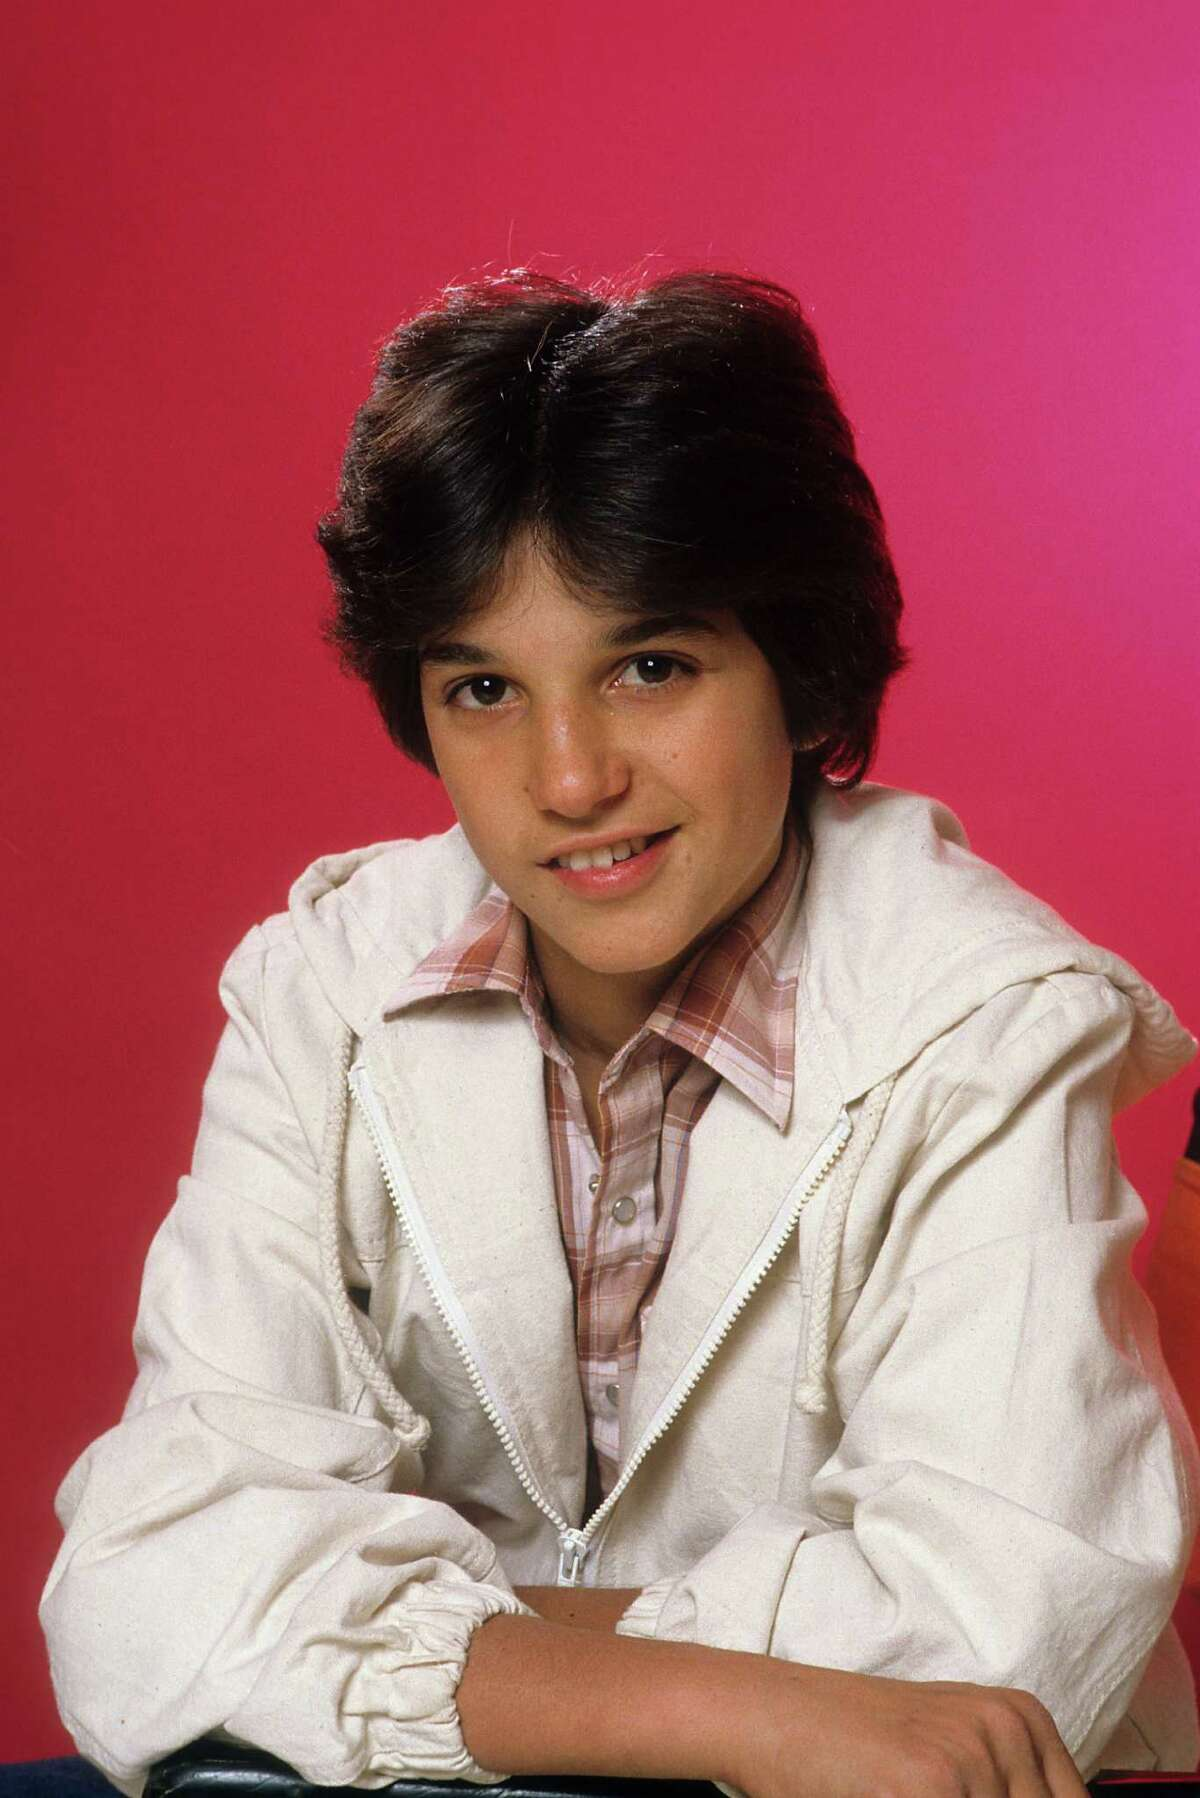 Ralph Macchio (JUST LOOK AT THIS GUY), born on Long Island, N.Y., got his start in the late-'70s doing TV commercials for Bubble Yum and Dr. Pepper.He got his first major role playing Jeremy Andretti in the TV series,